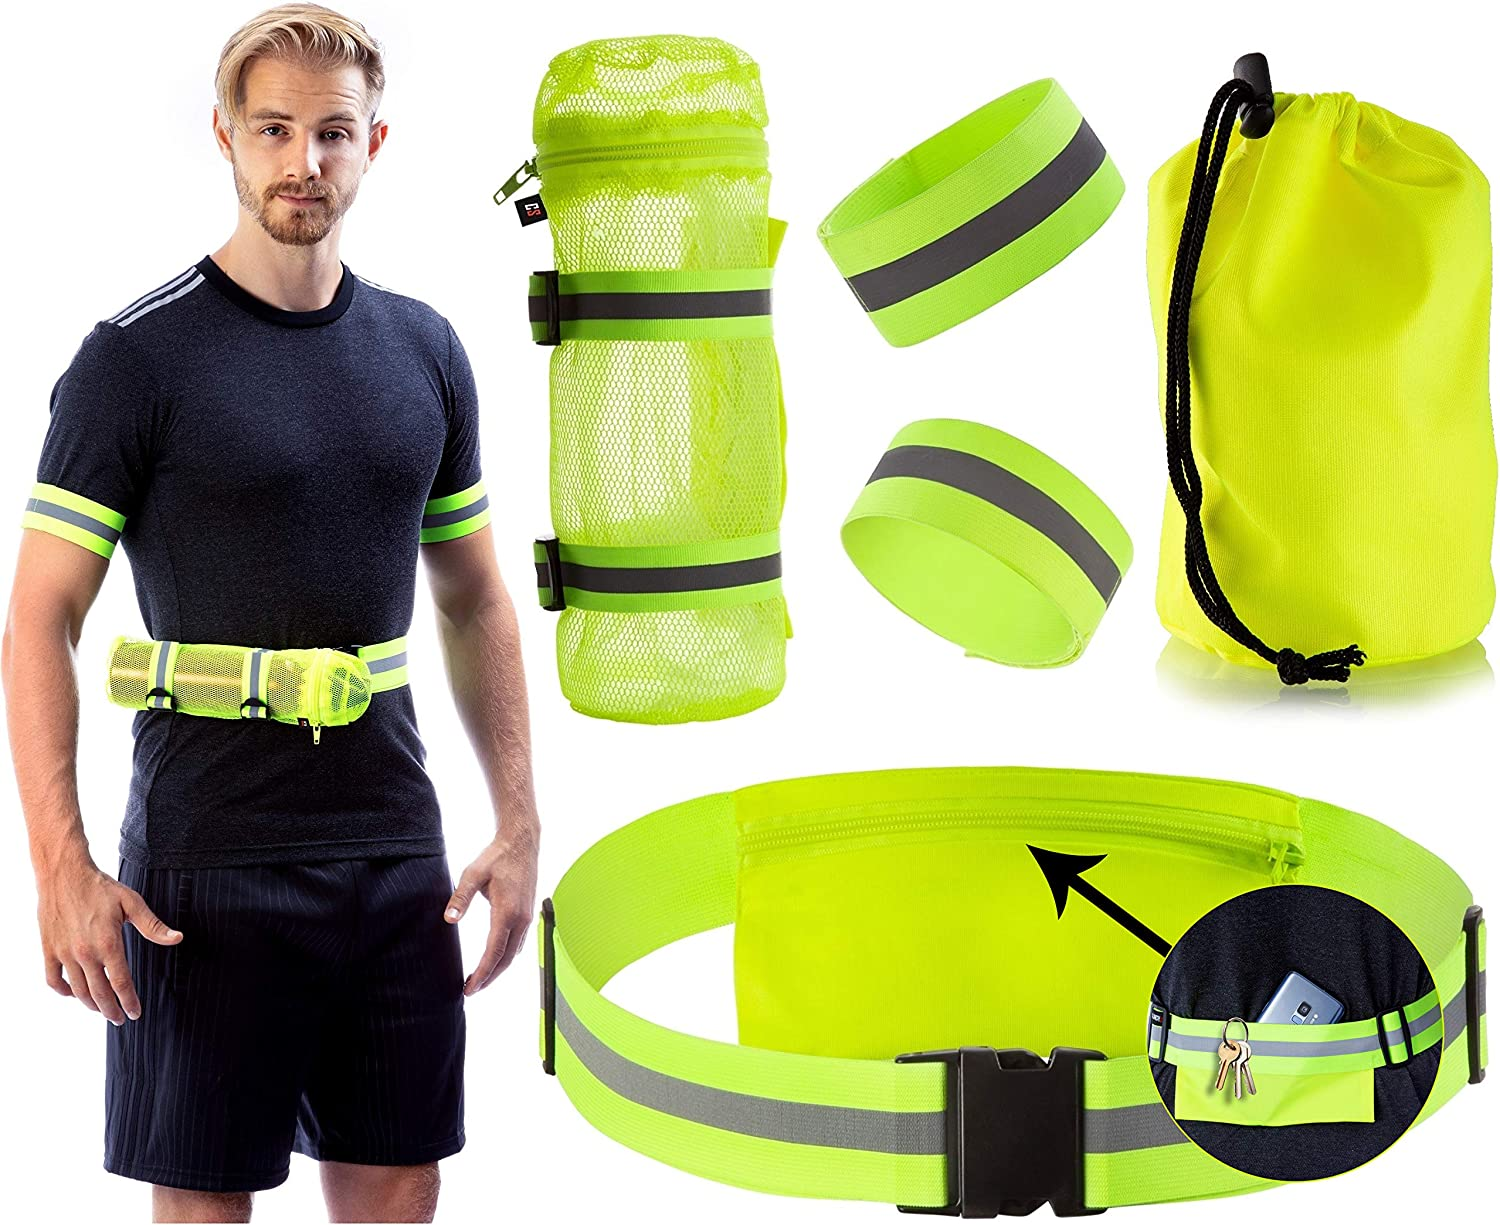 cyclists walkers Hi-Visibility Reflective Sling Bag for runners Le Flash